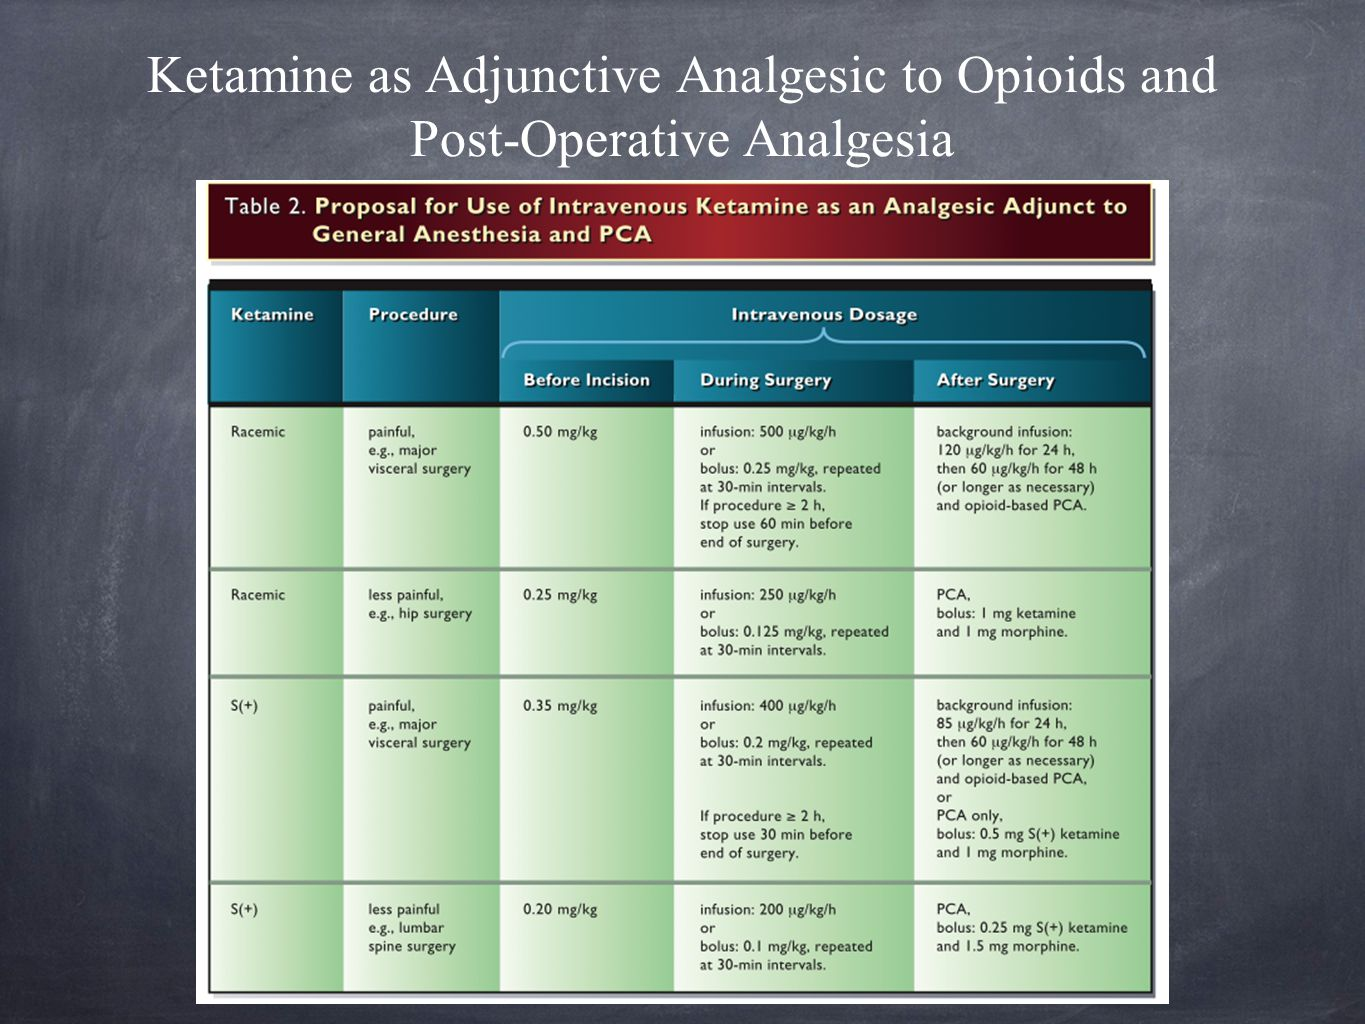 Ketamine as Adjunctive Analgesic to Opioids and Post-Operative Analgesia